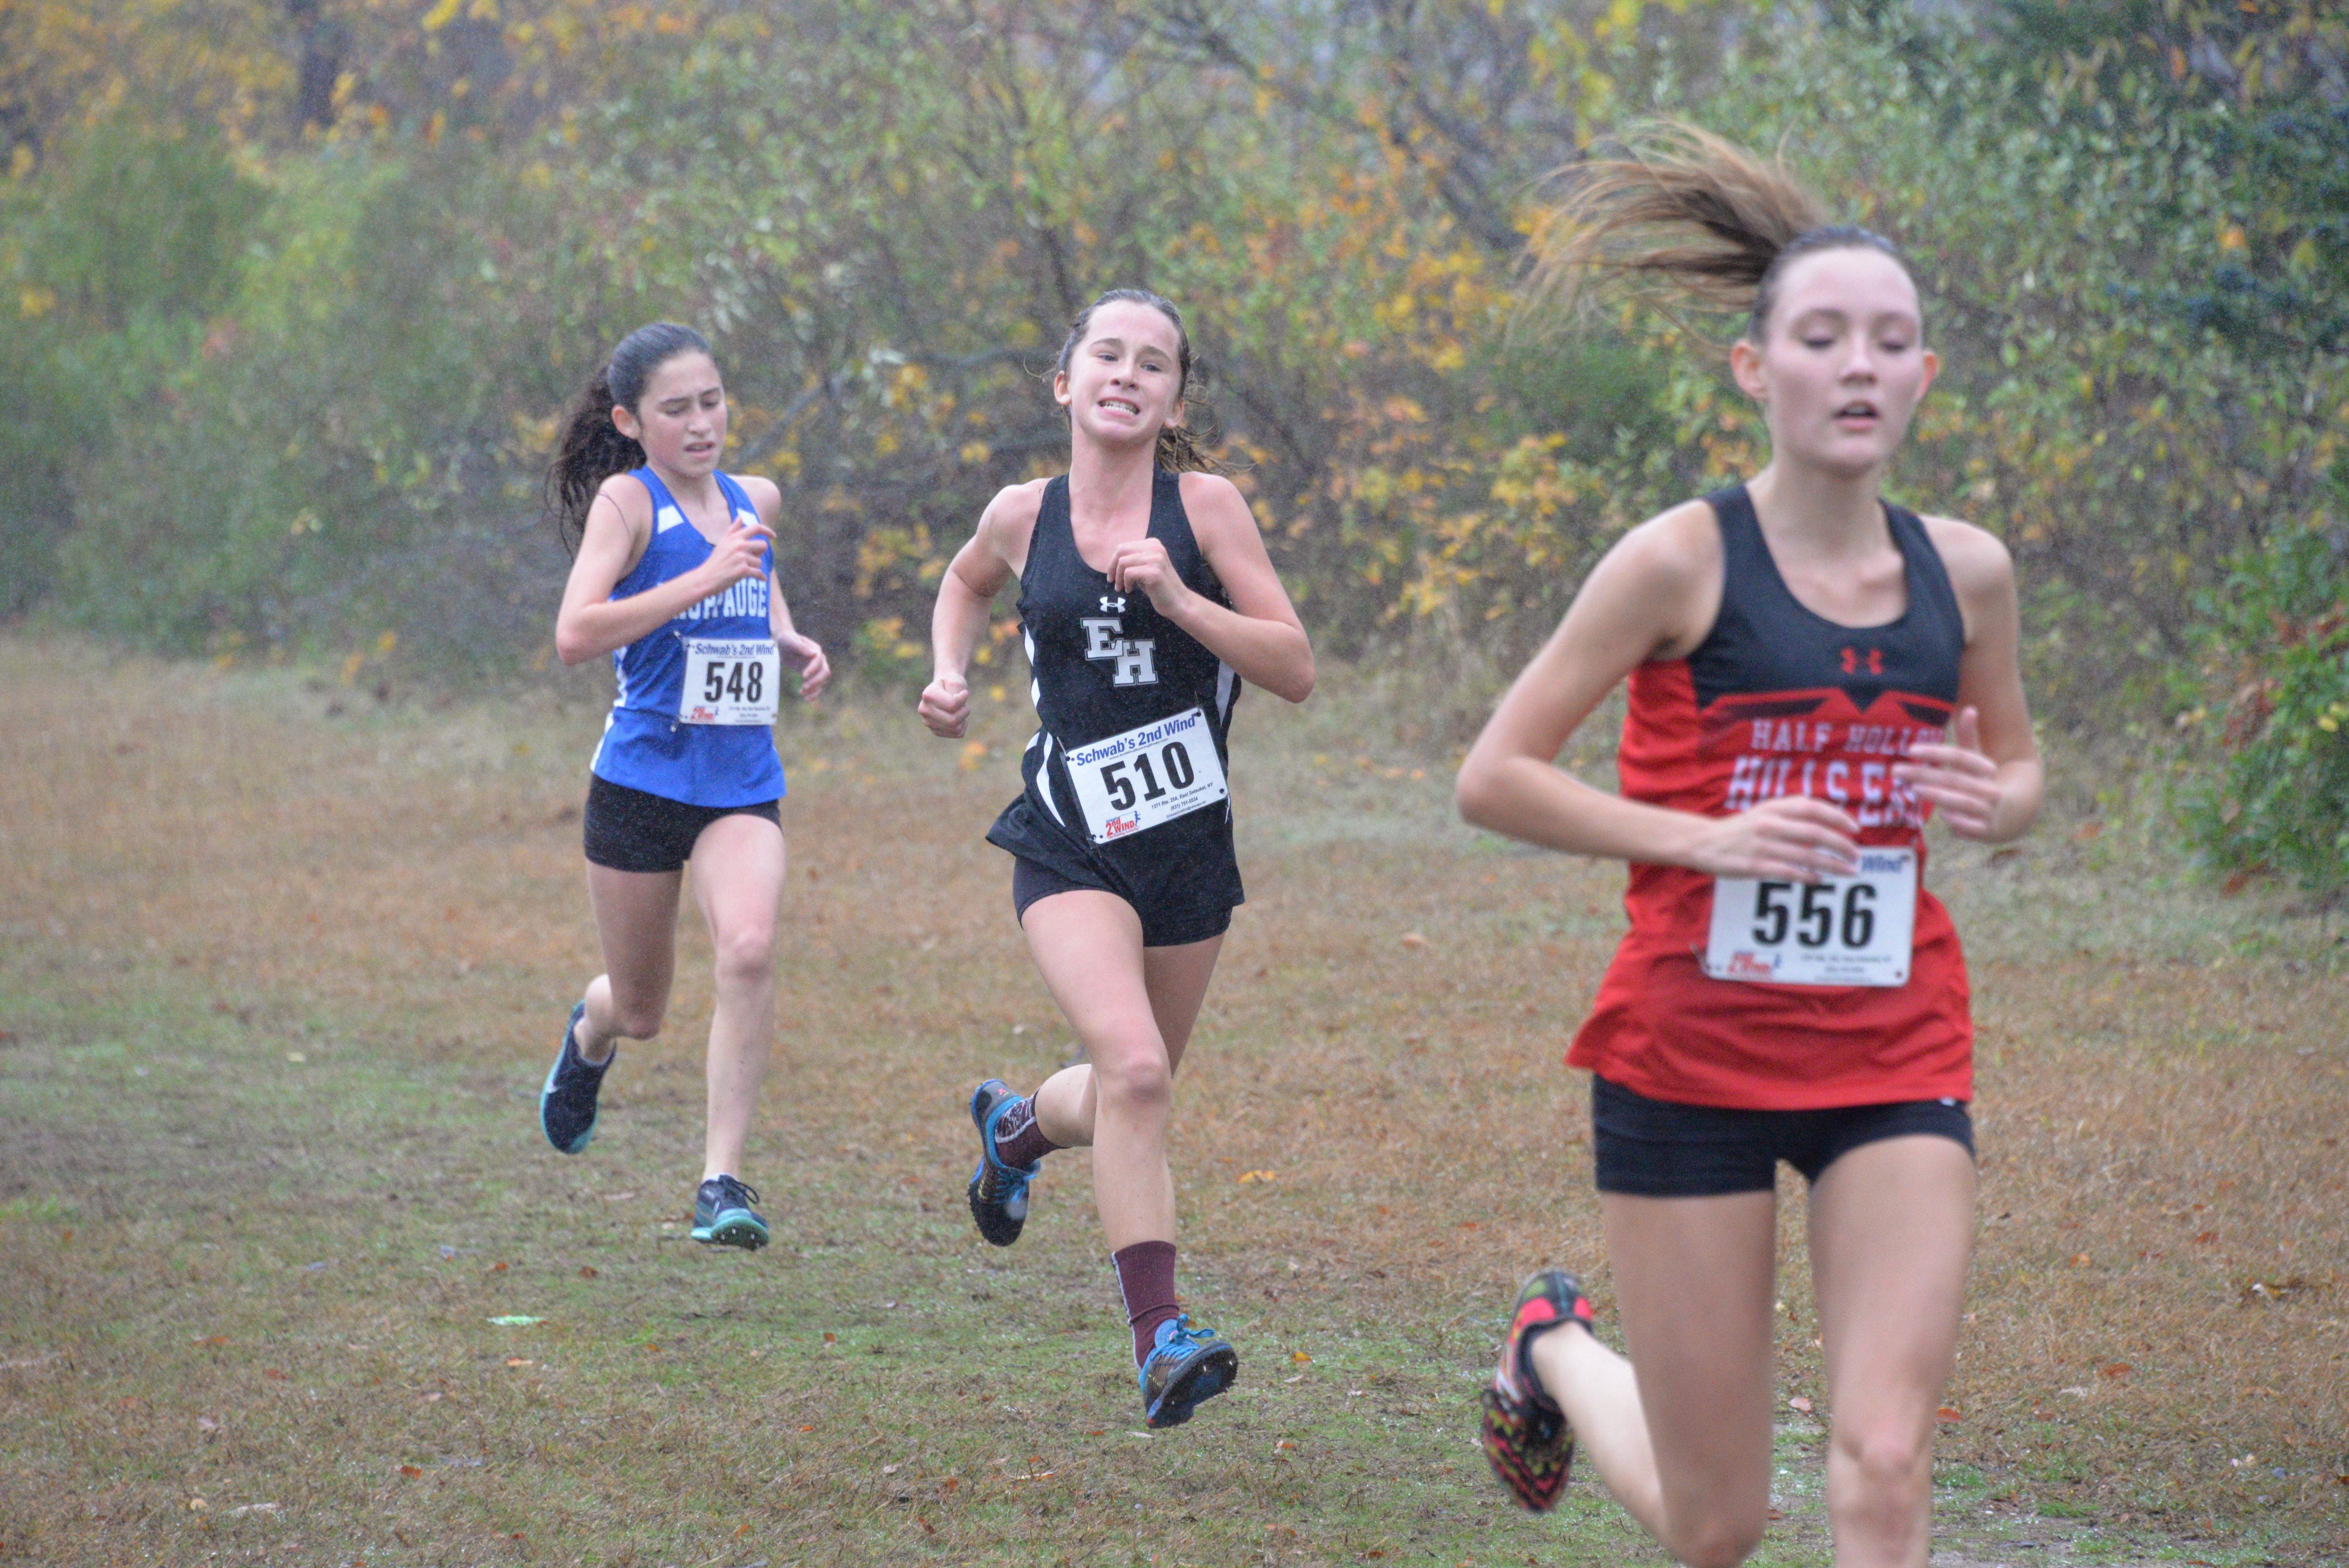 Eighth-grader Dylan Cashin came up big for the East Hampton girls cross country team at the division meet on October 29.